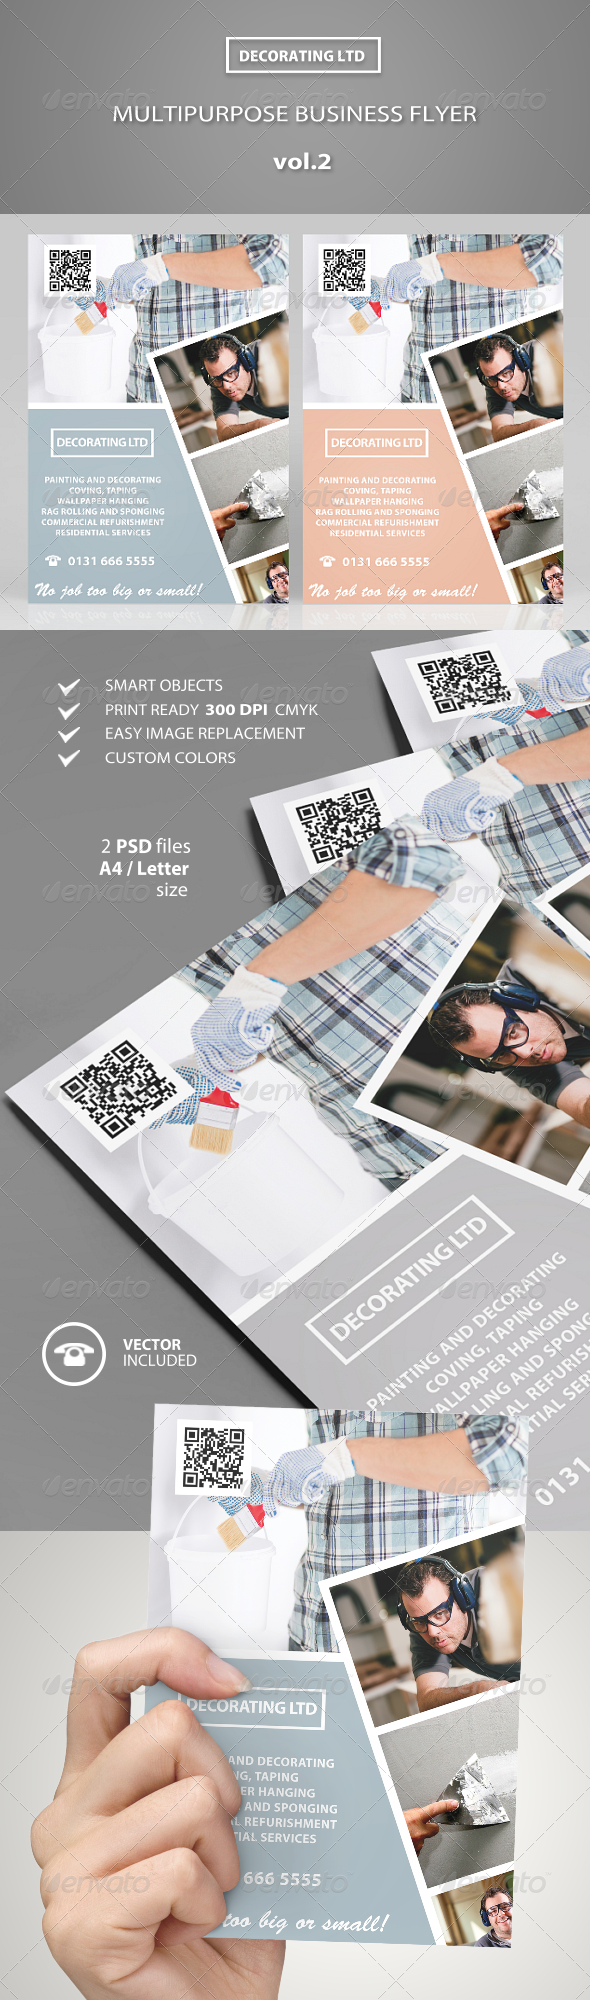 GraphicRiver Multipurpose Business Flyer vol.2 7439890